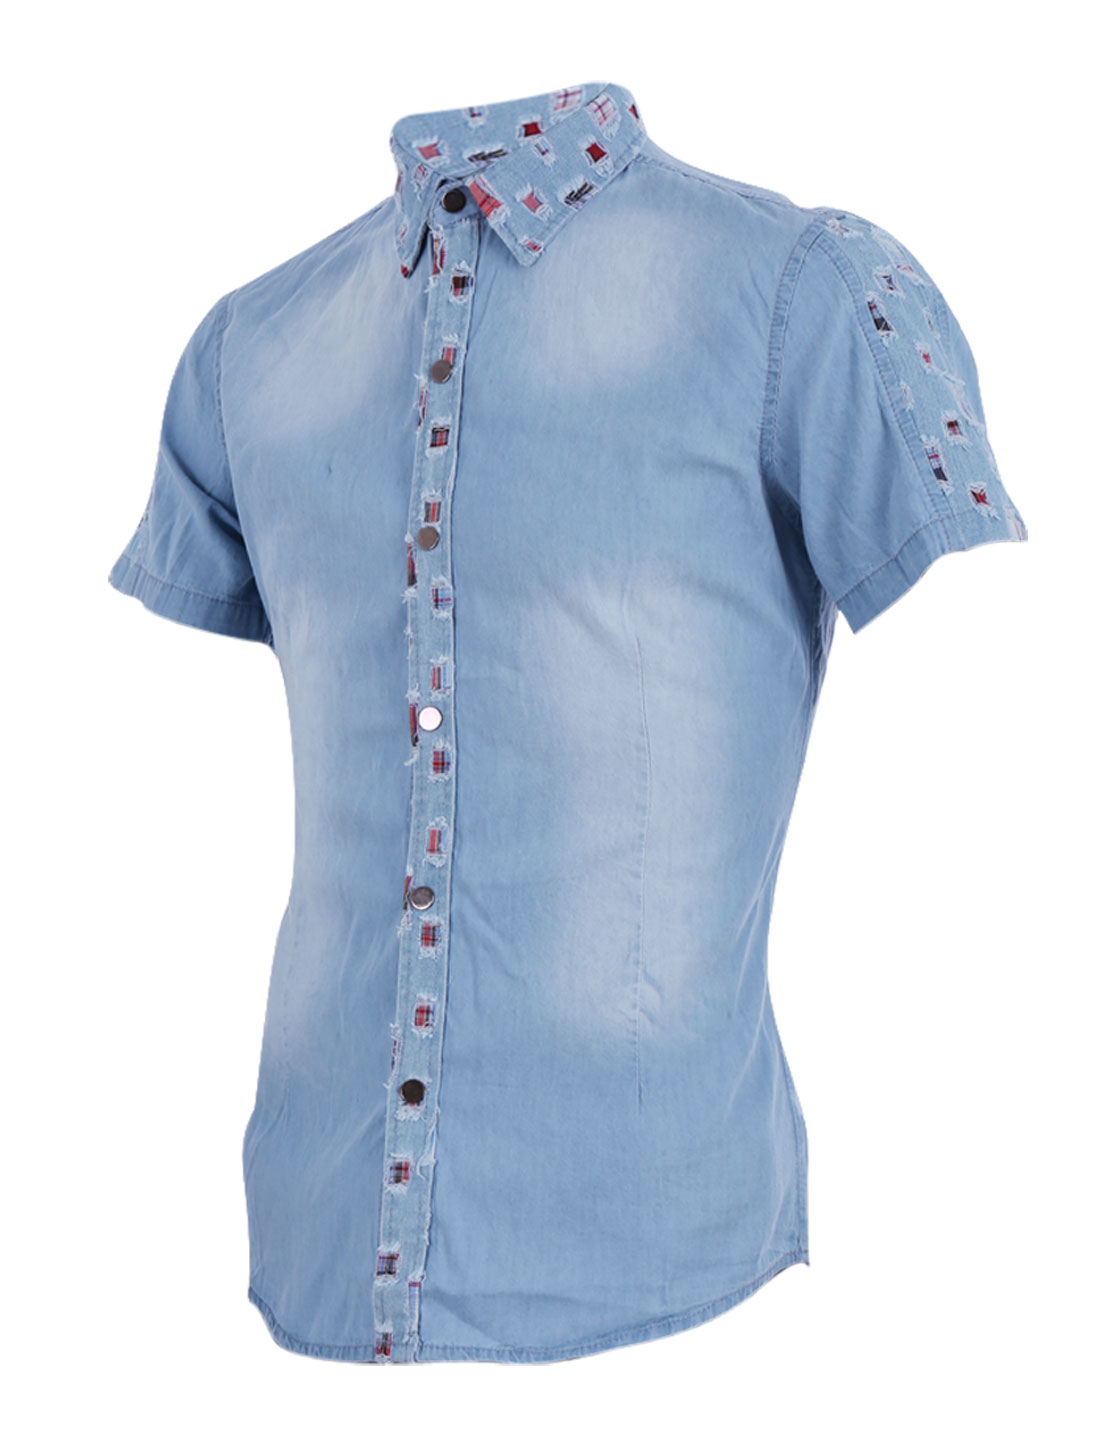 Men Button Front Point Collar Short Sleeve Summer Casual Shirt M Sky Blue